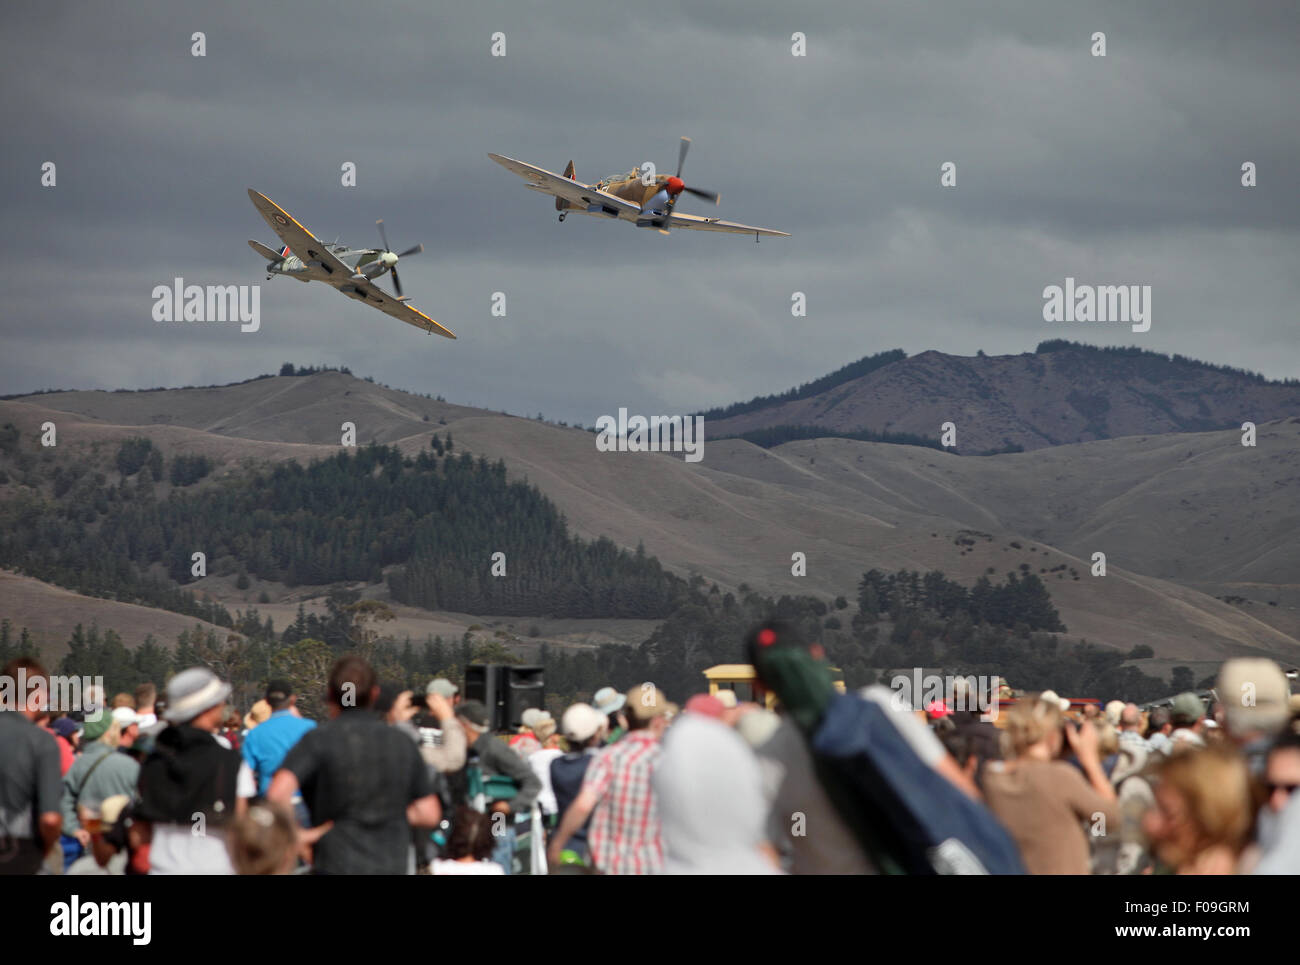 Two Spitfires fly over the crowd at Omaka's Classic Fighters, 2015, Marlborough, New Zealand - Stock Image